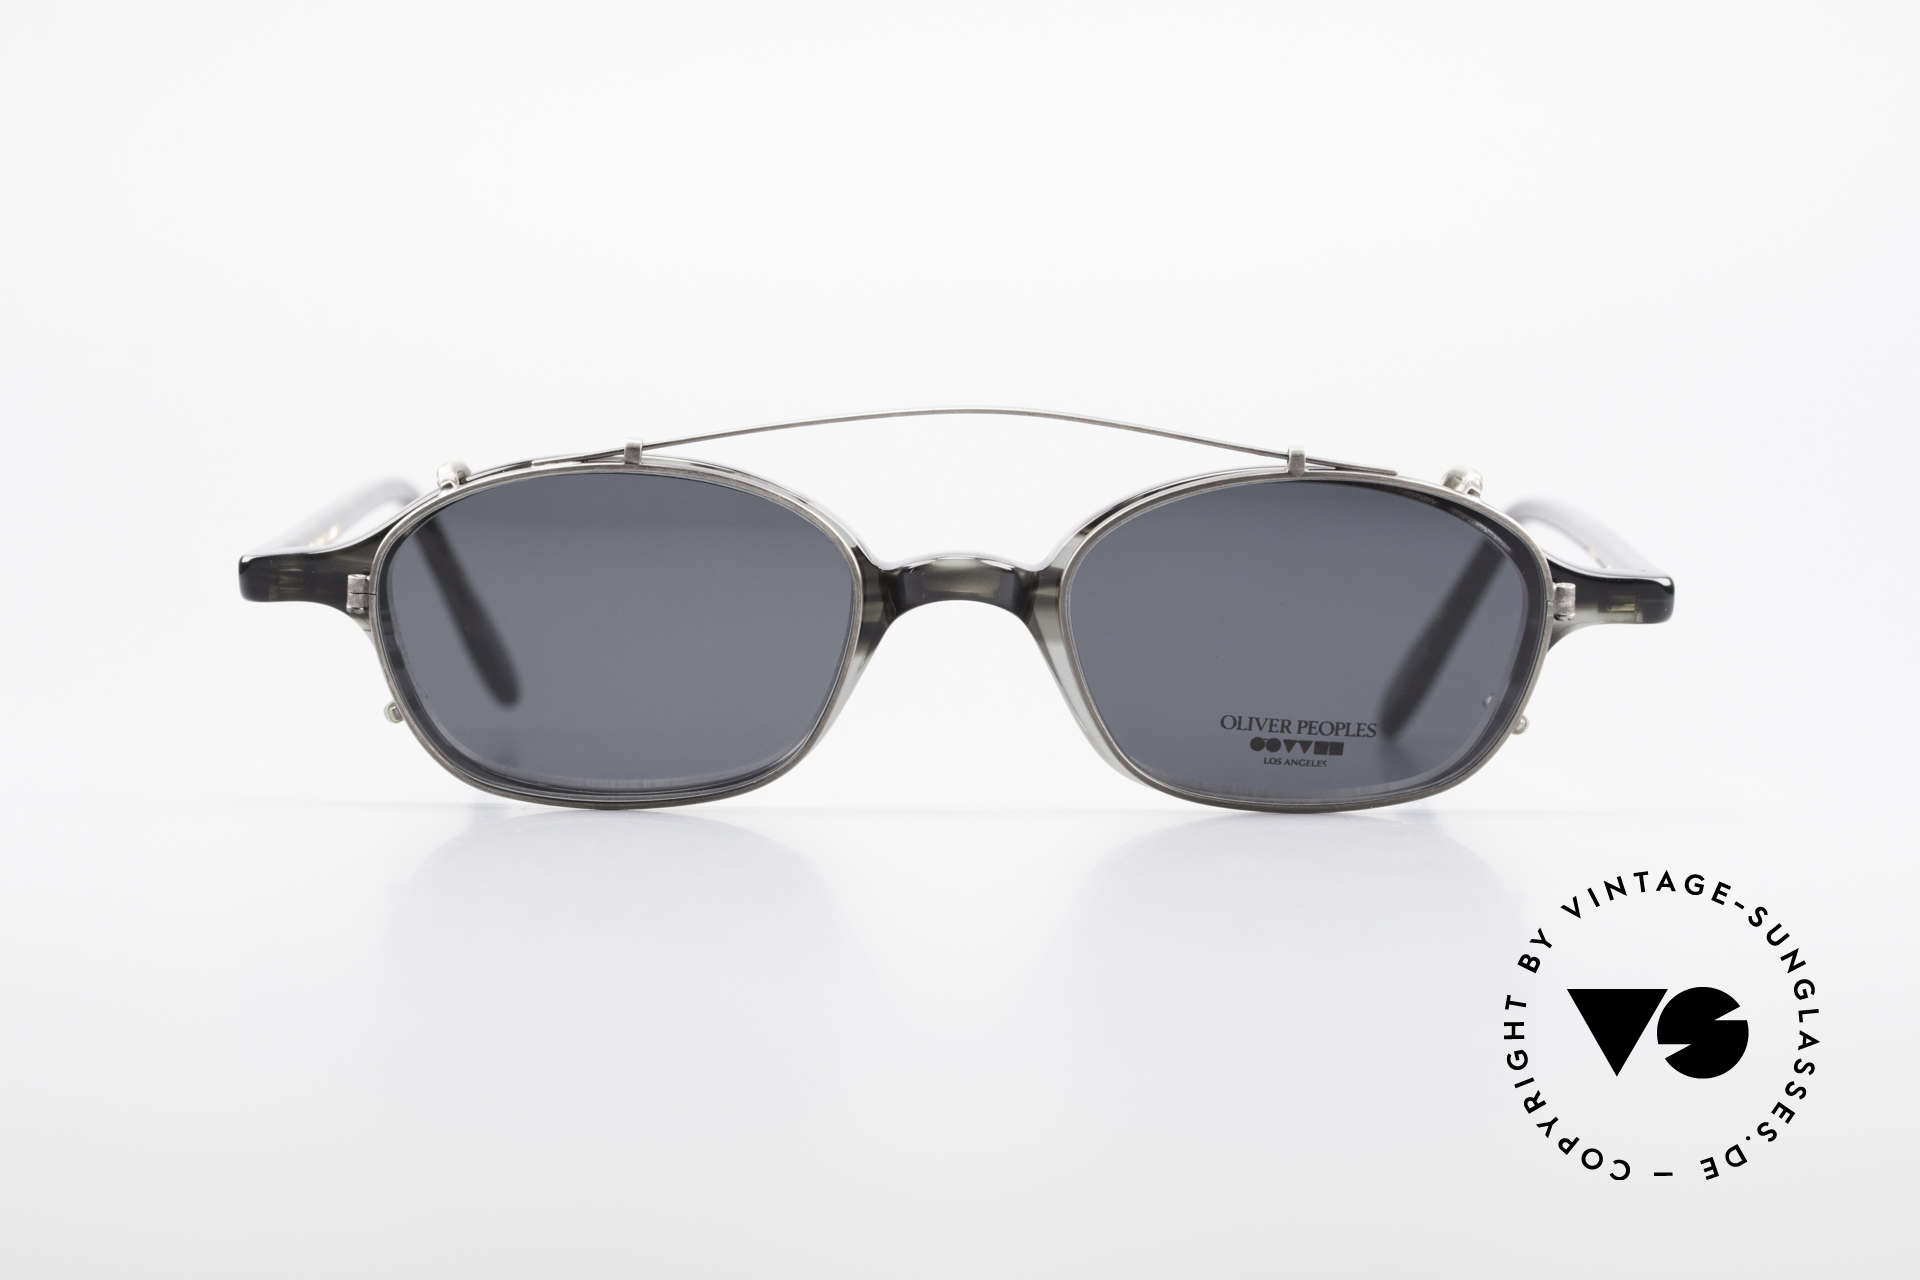 Oliver Peoples OP561 Classic 90's Frame Clip On, LUXURY glasses: a lifestyle that is distinctly L.A., Made for Men and Women